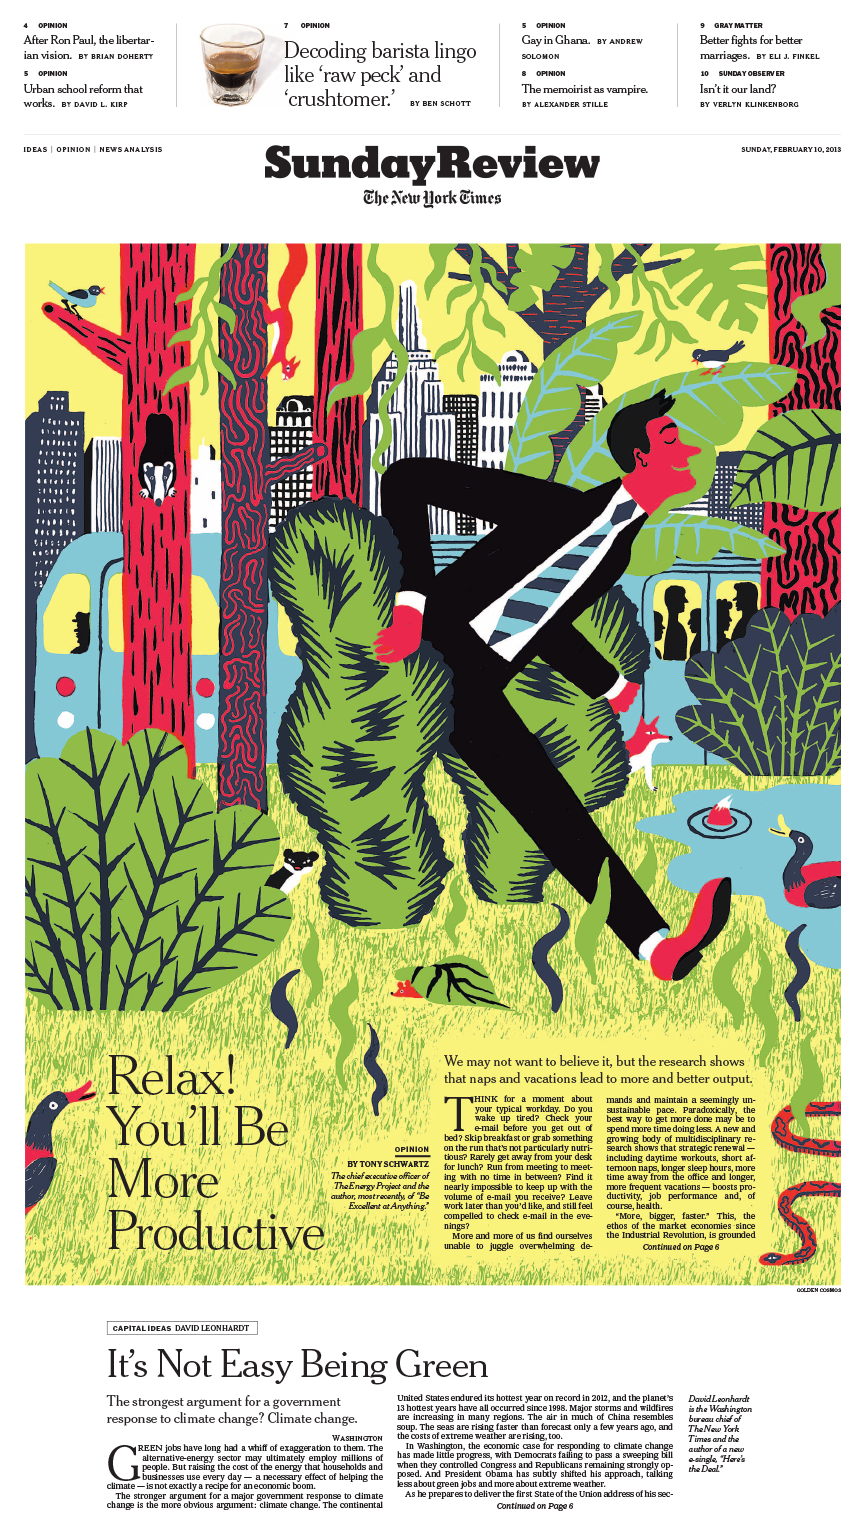 Sunday Review Cover: Relax! You'll Be More Productive